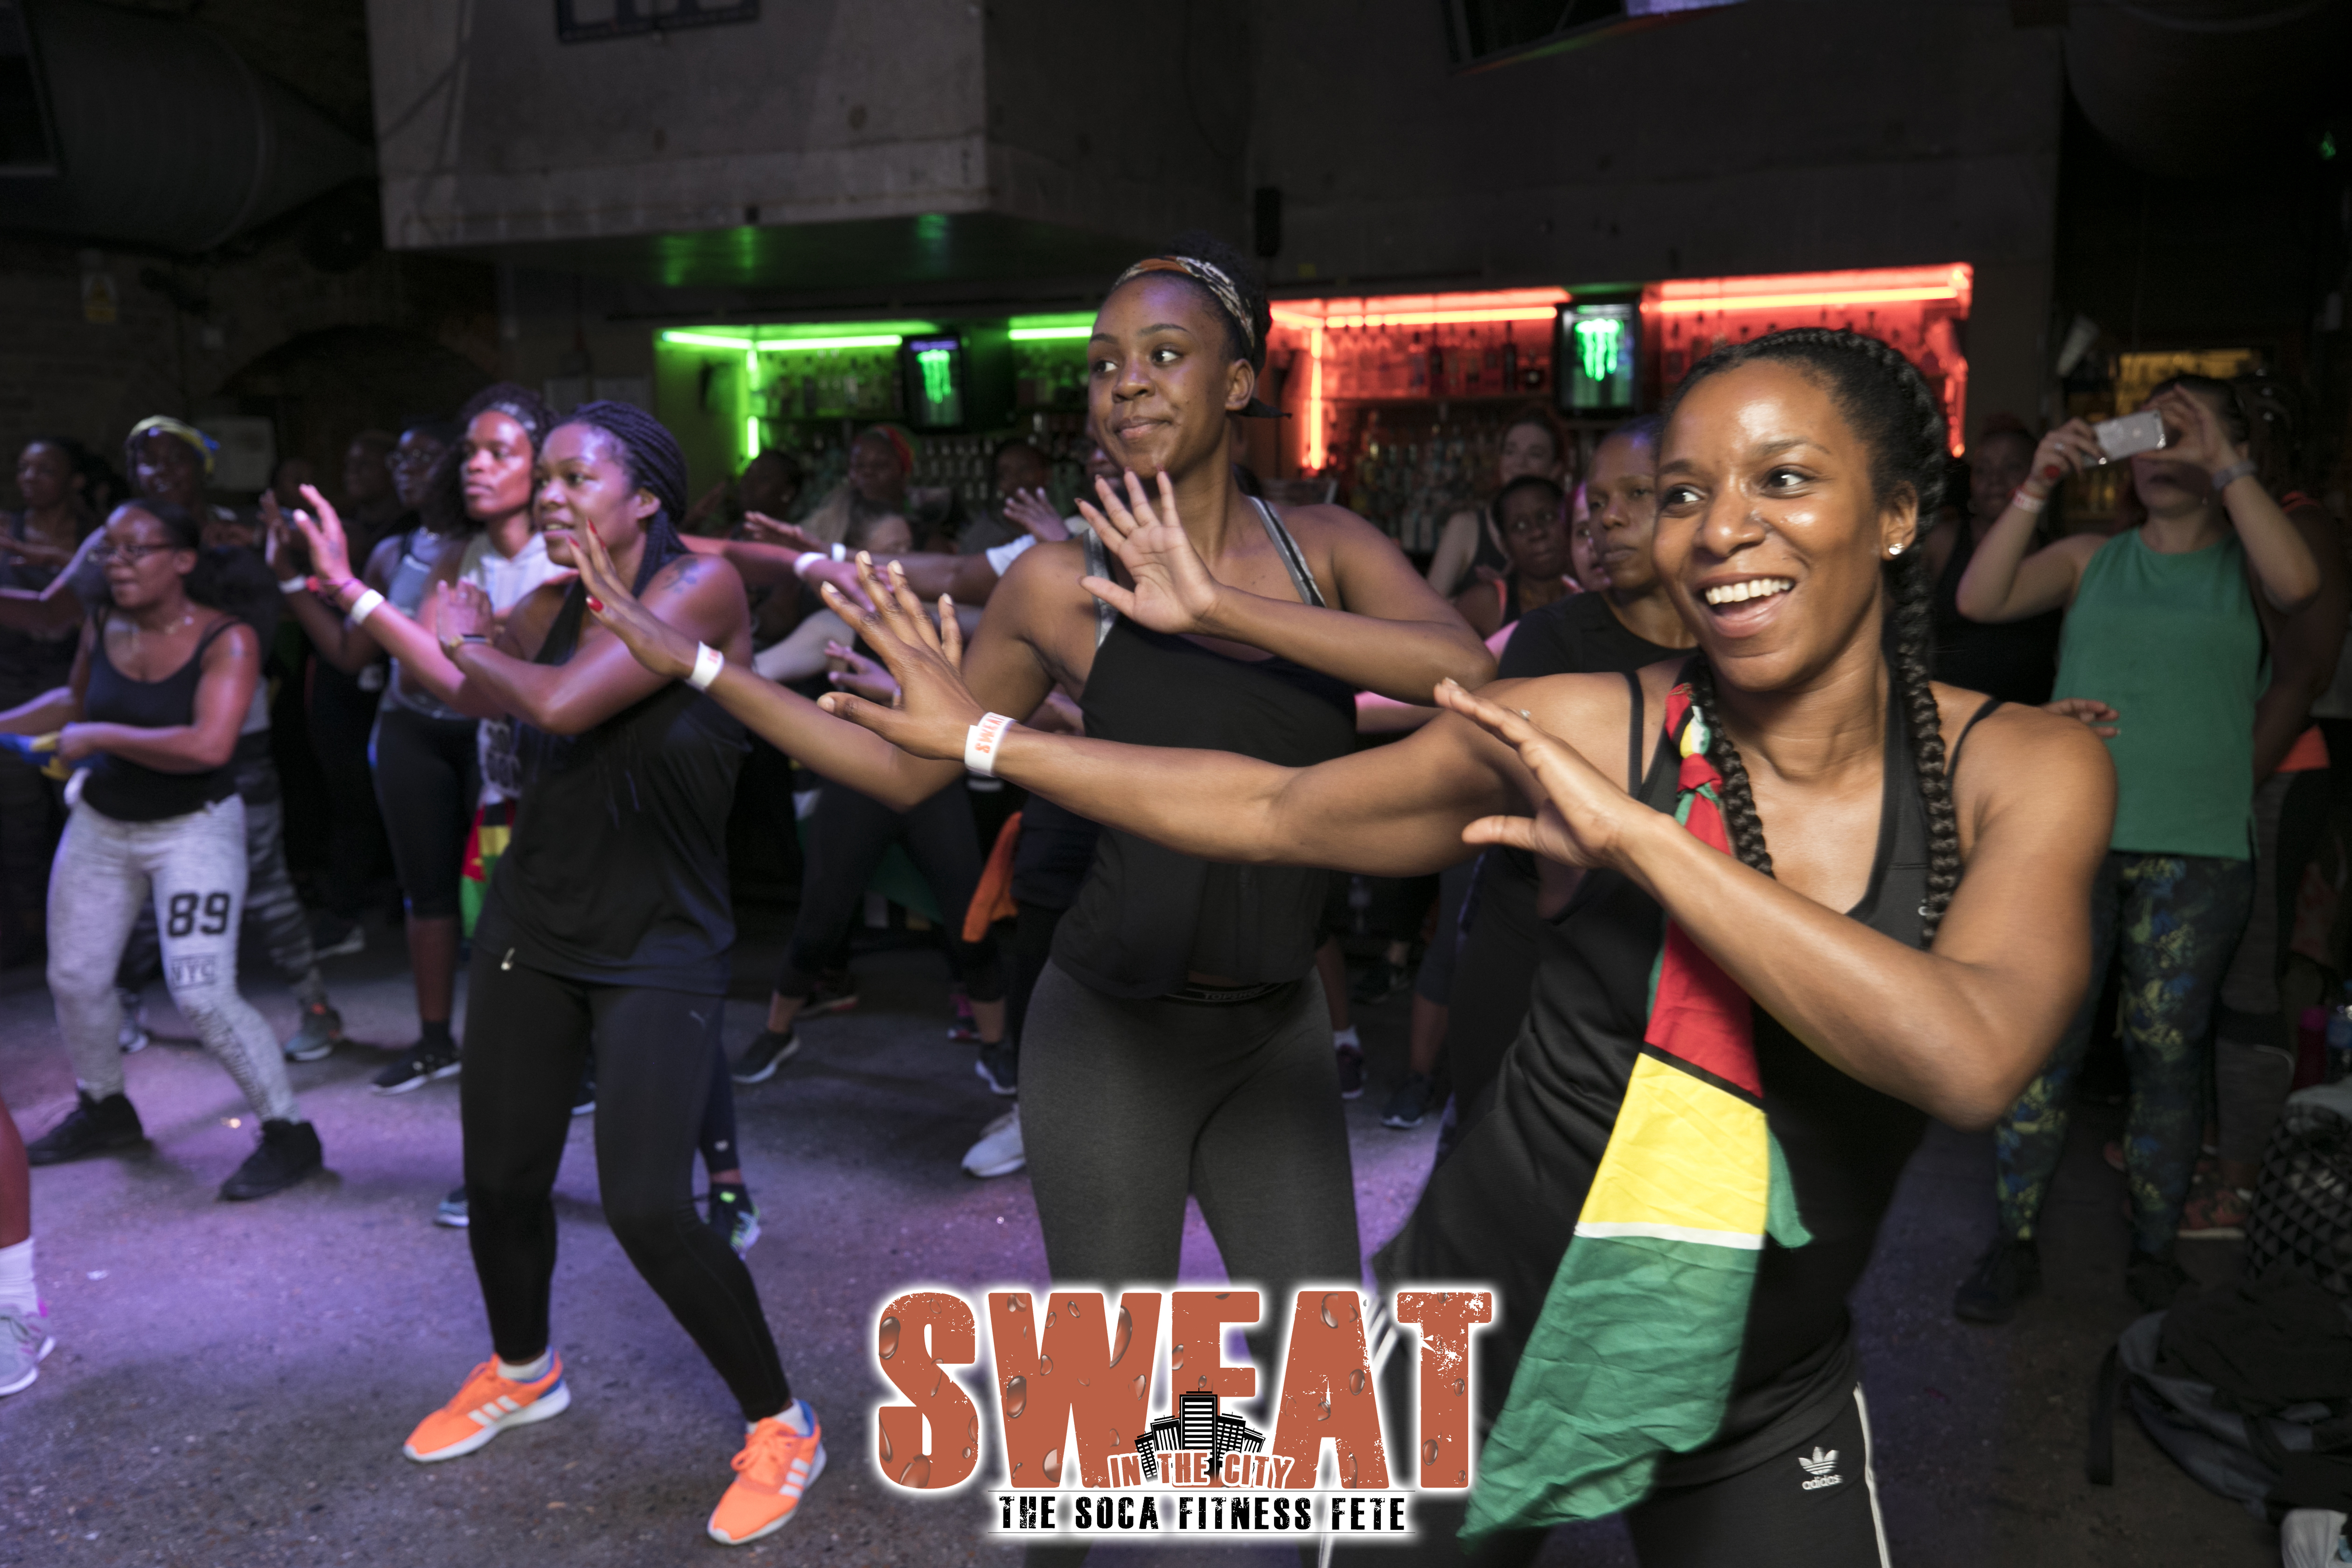 The Soca Fitness Fete I